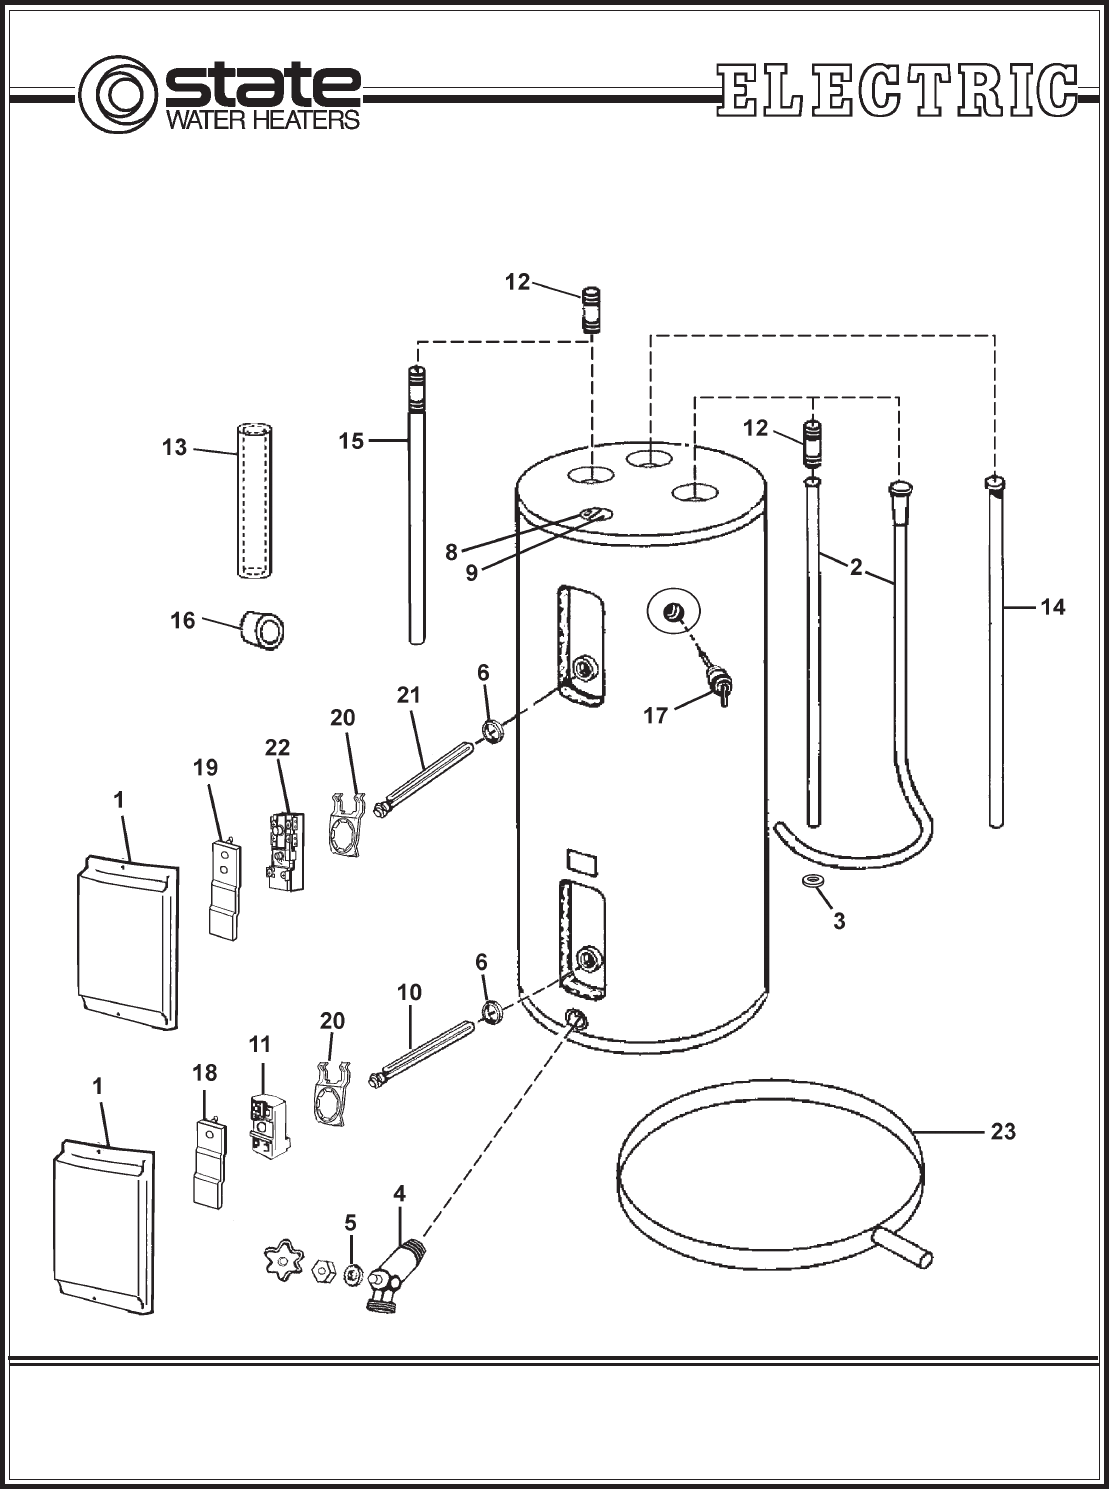 State Select Electric Water Heater Manual